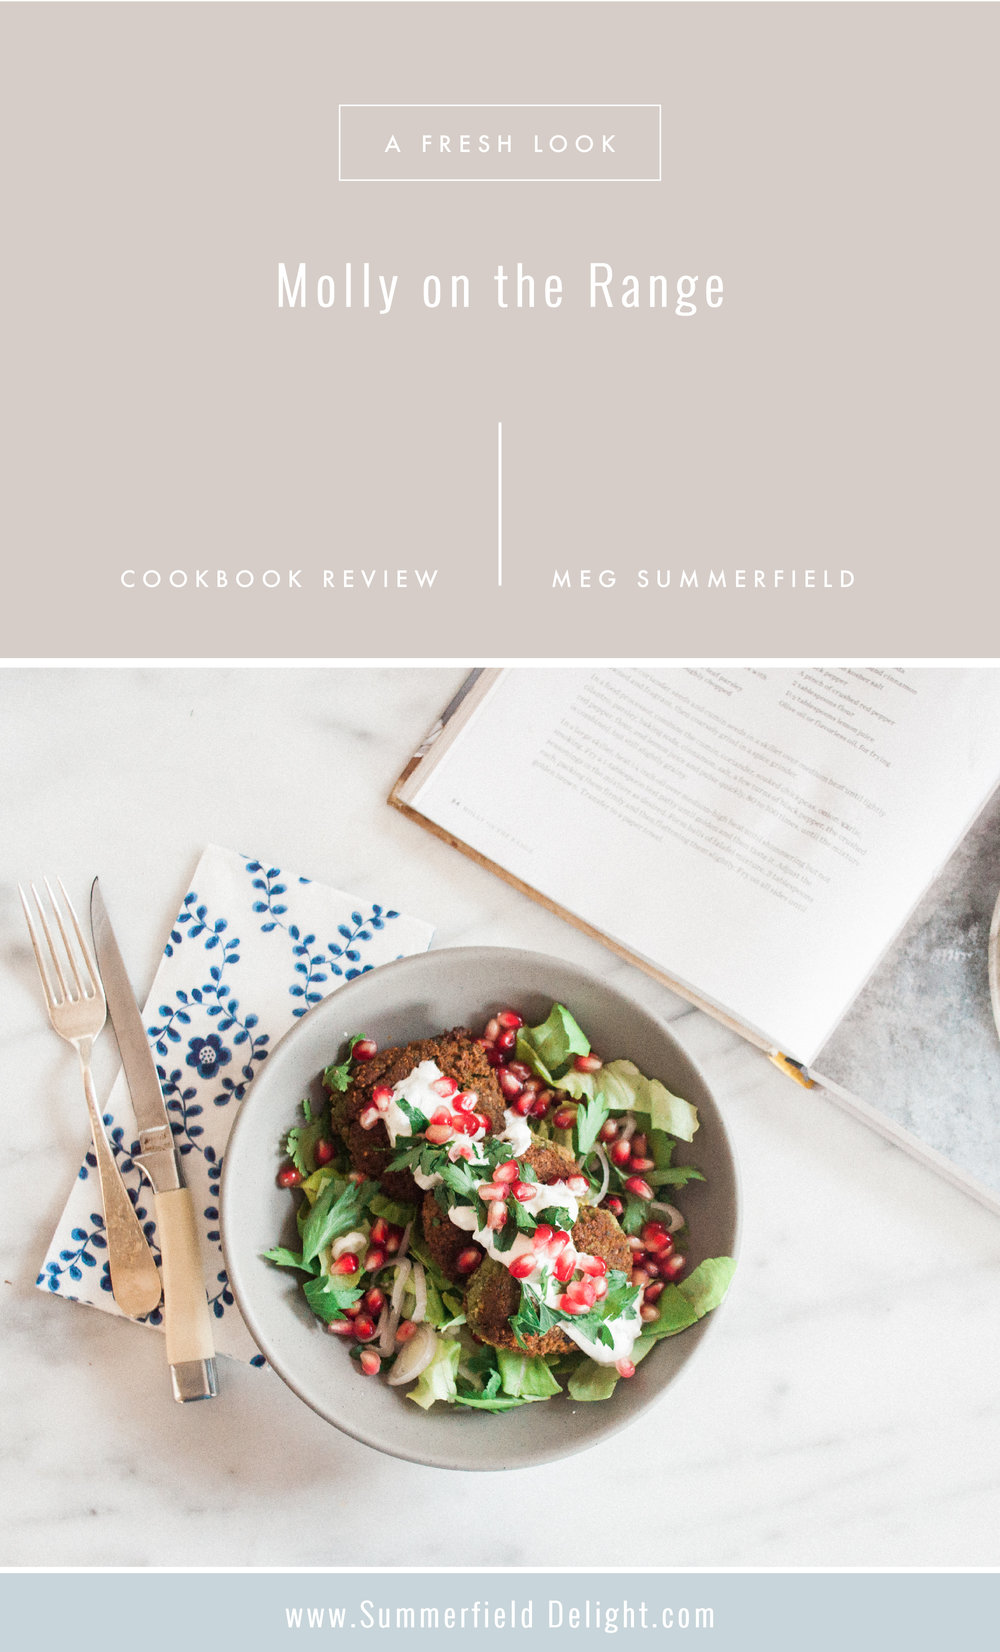 Summerfield Delight | Molly on the Range Cookbook Review